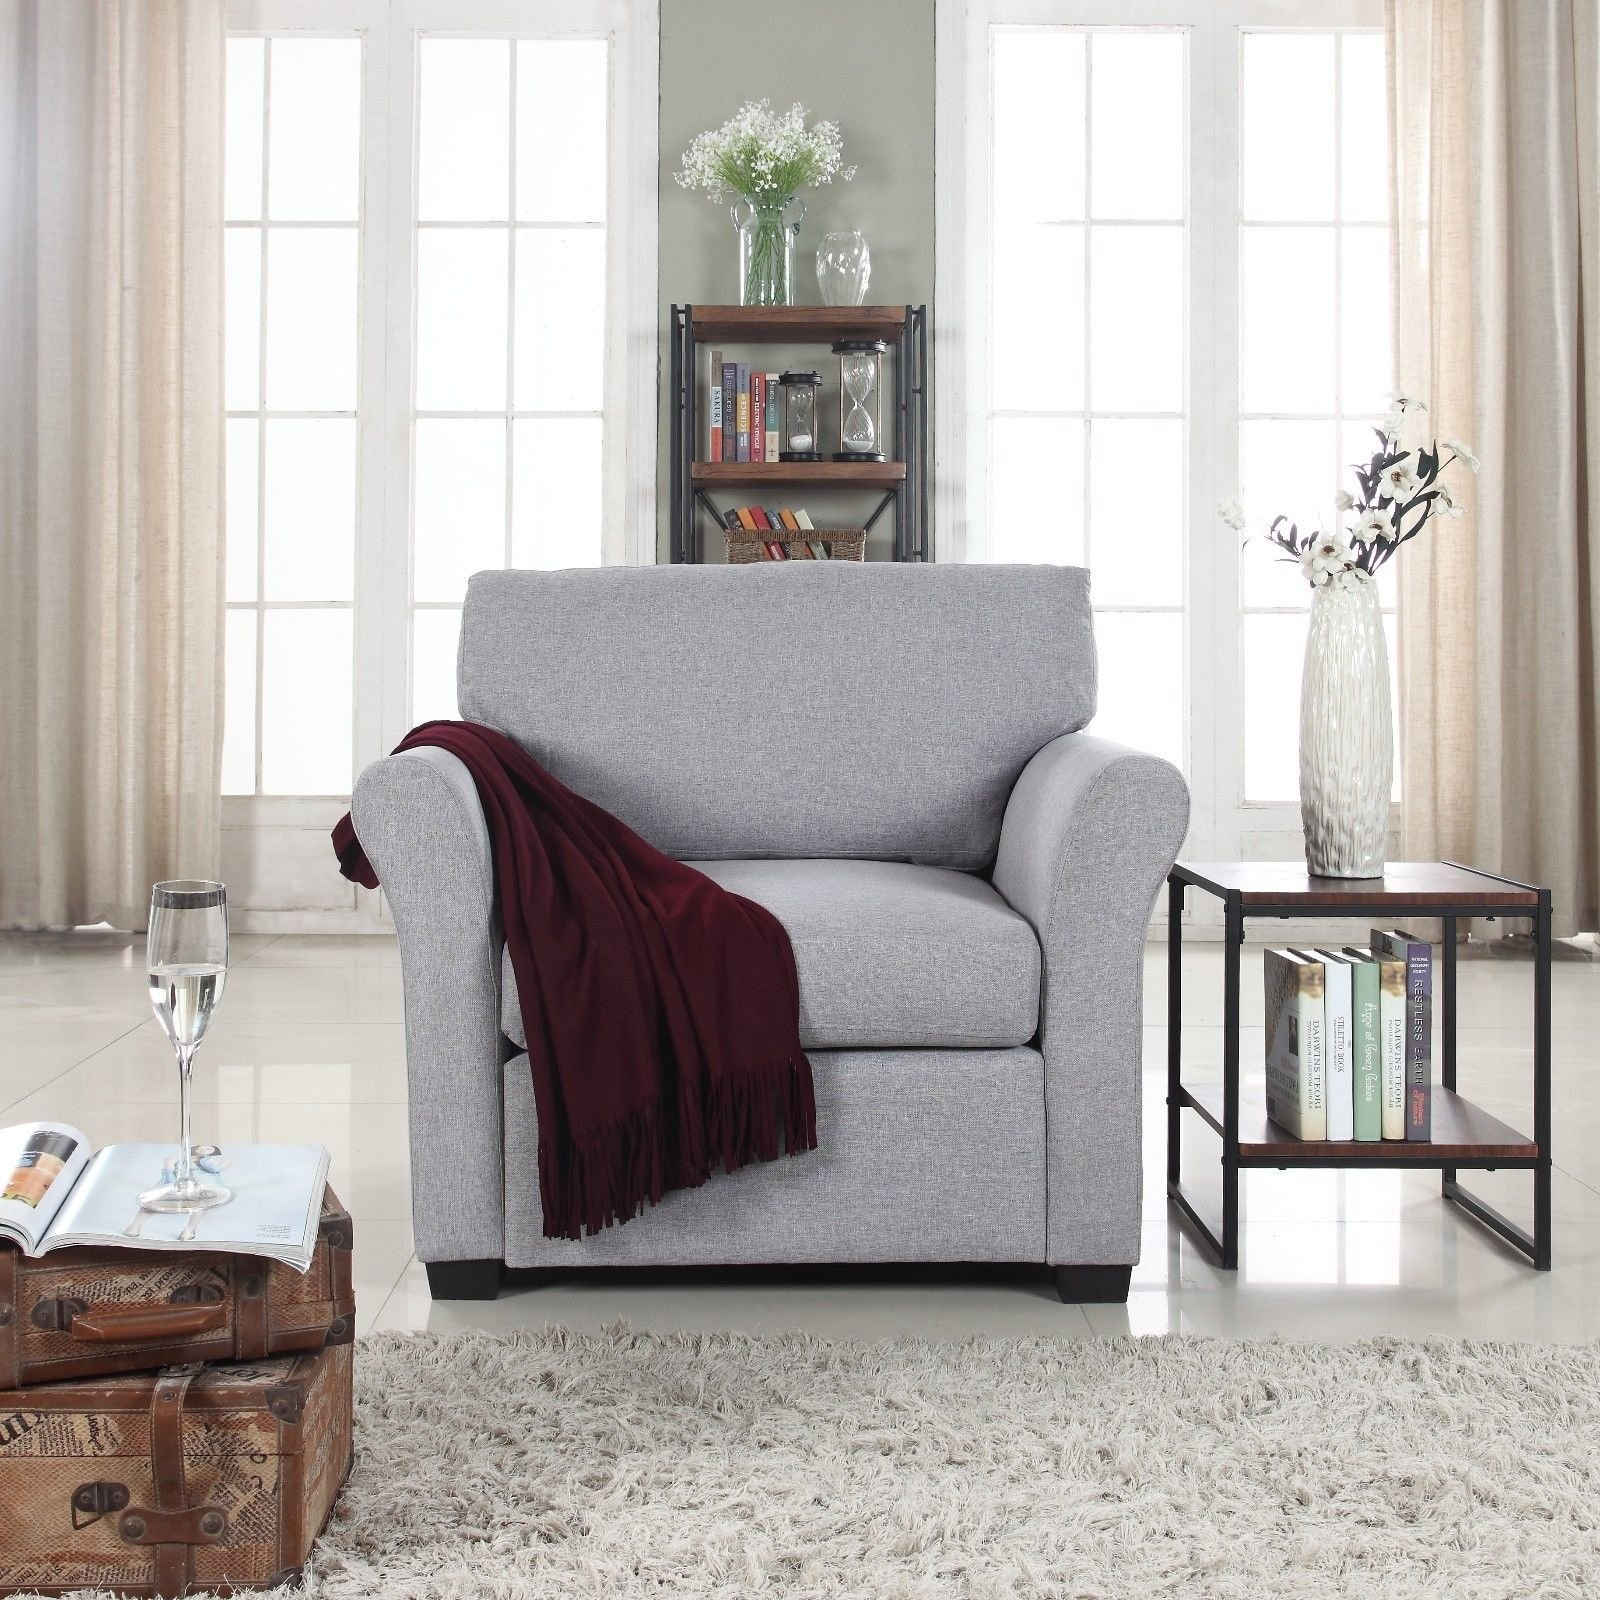 Details About Classic Traditional Linen Fabric Accent Chair Armchair For Living Room Grey